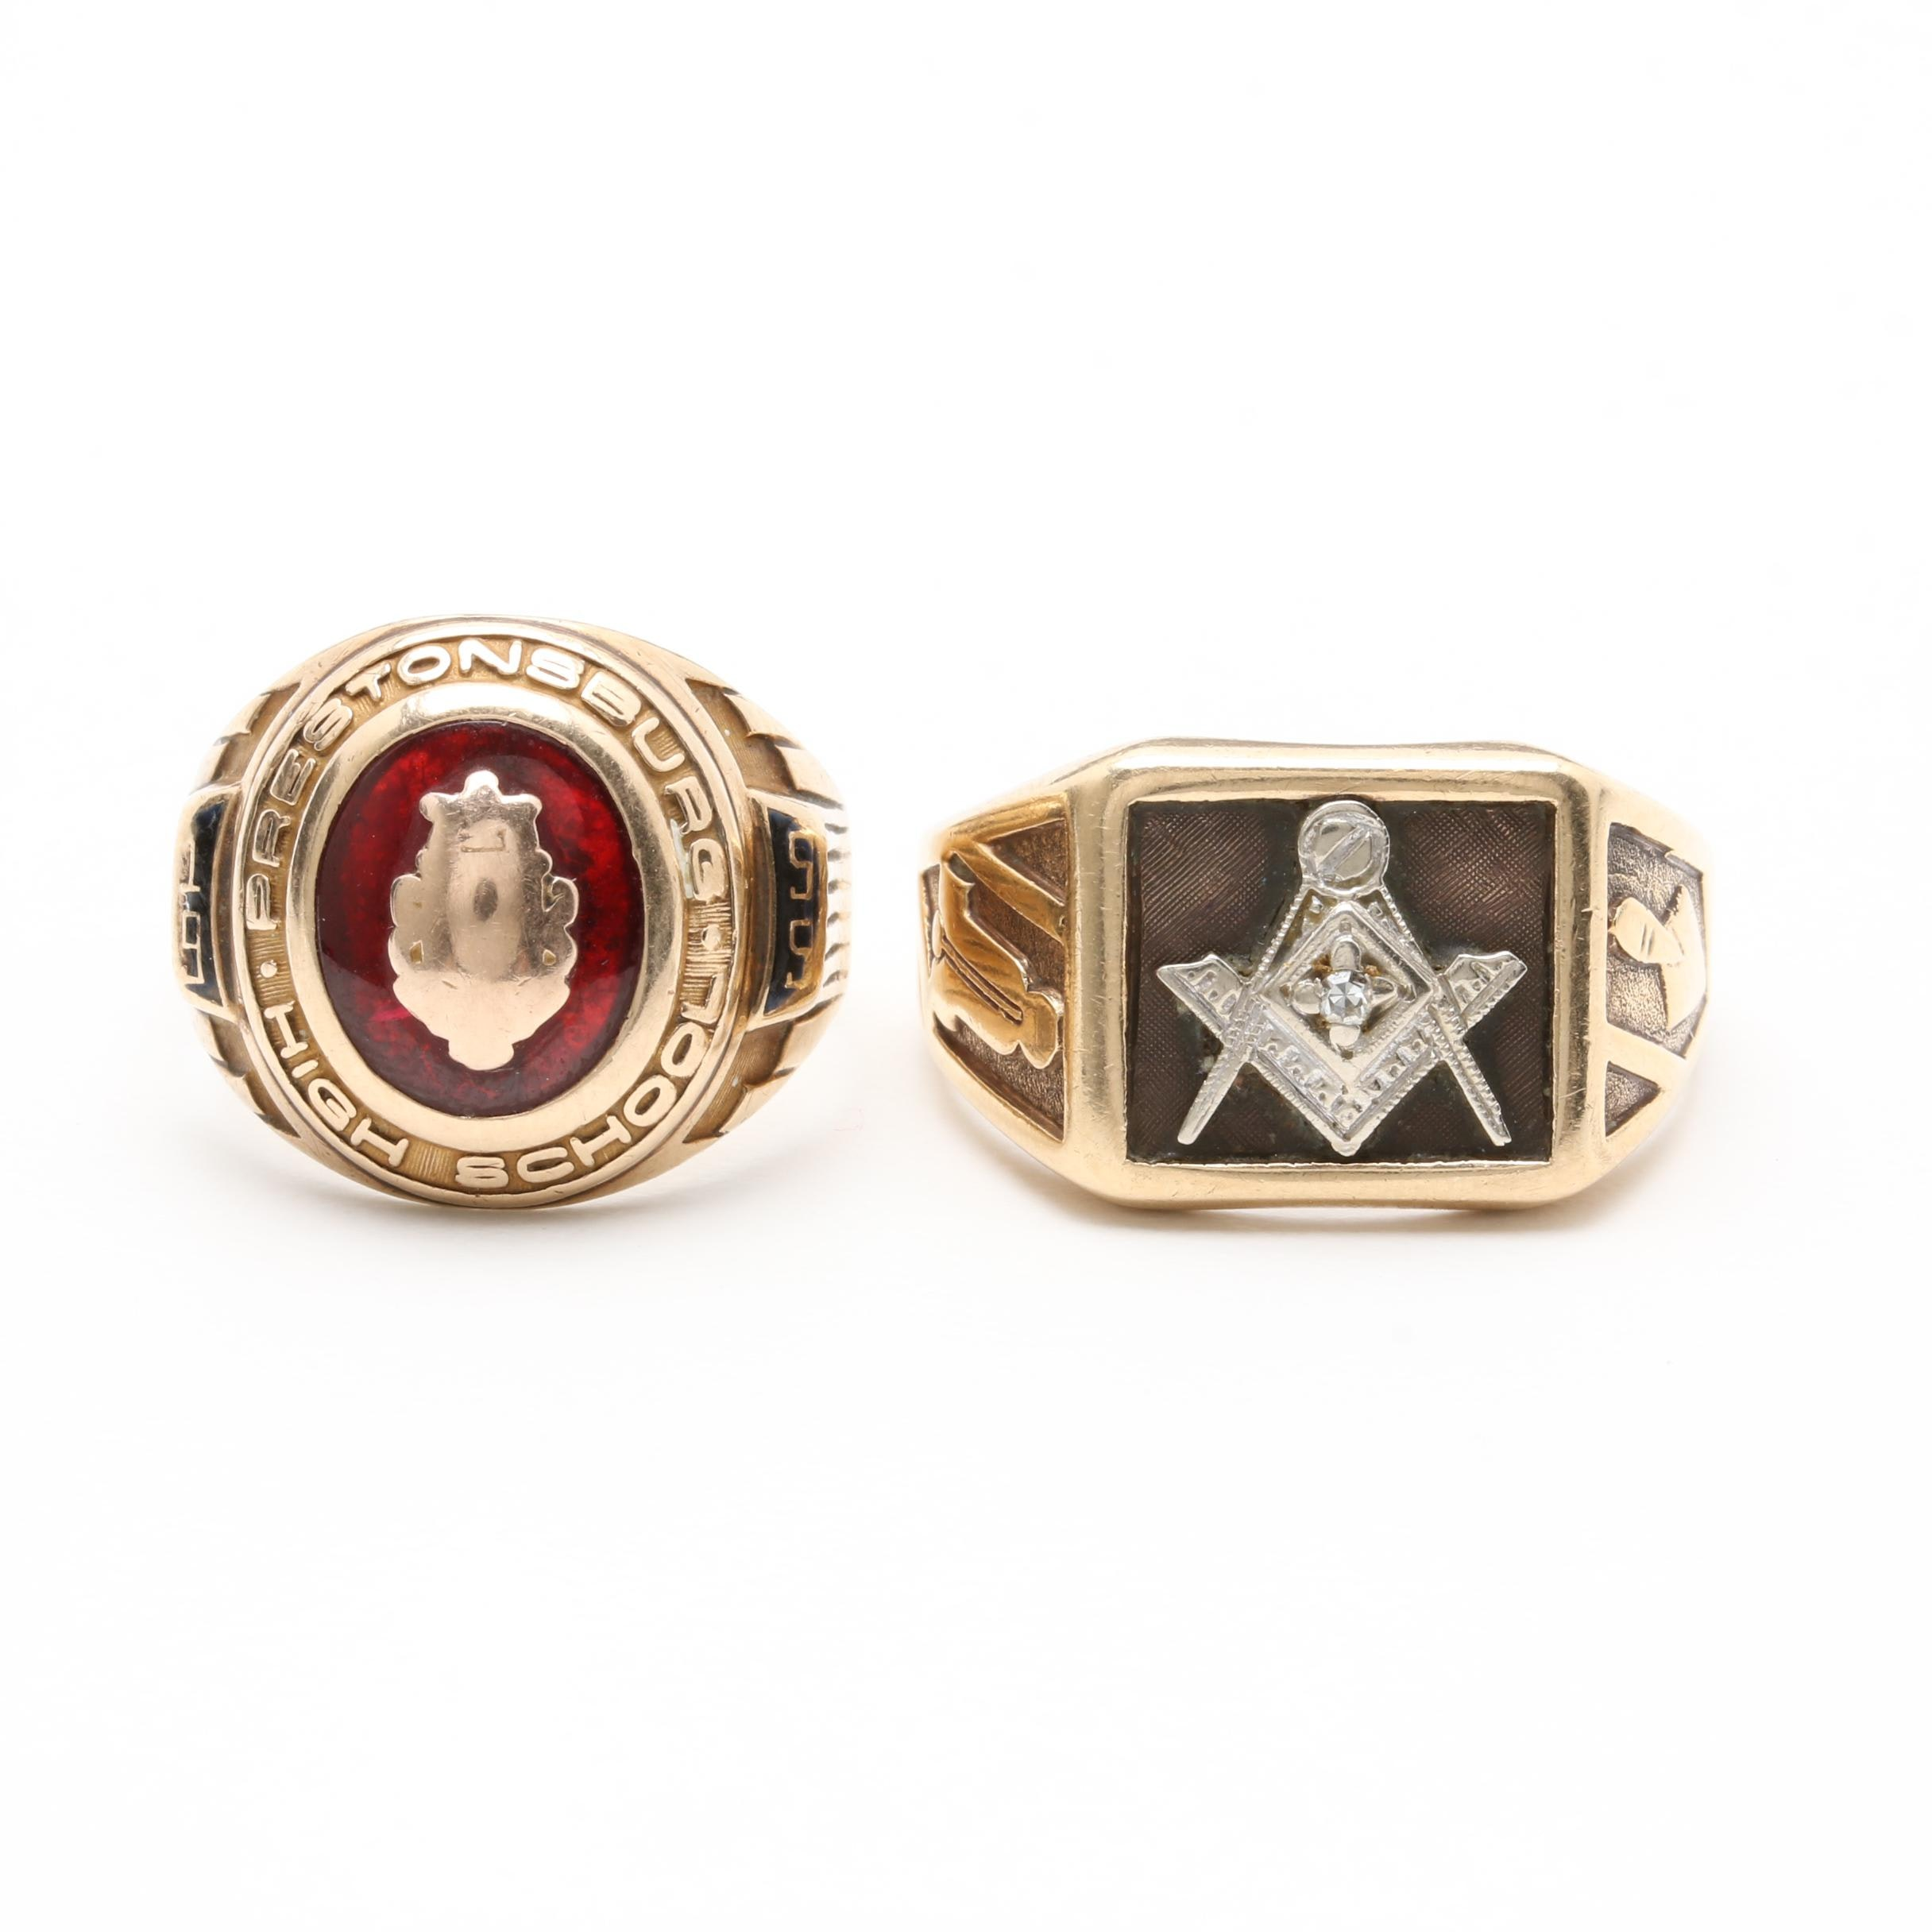 10K Yellow Gold Free Mason Diamond Ring with 1955 Synthetic Ruby Class Ring